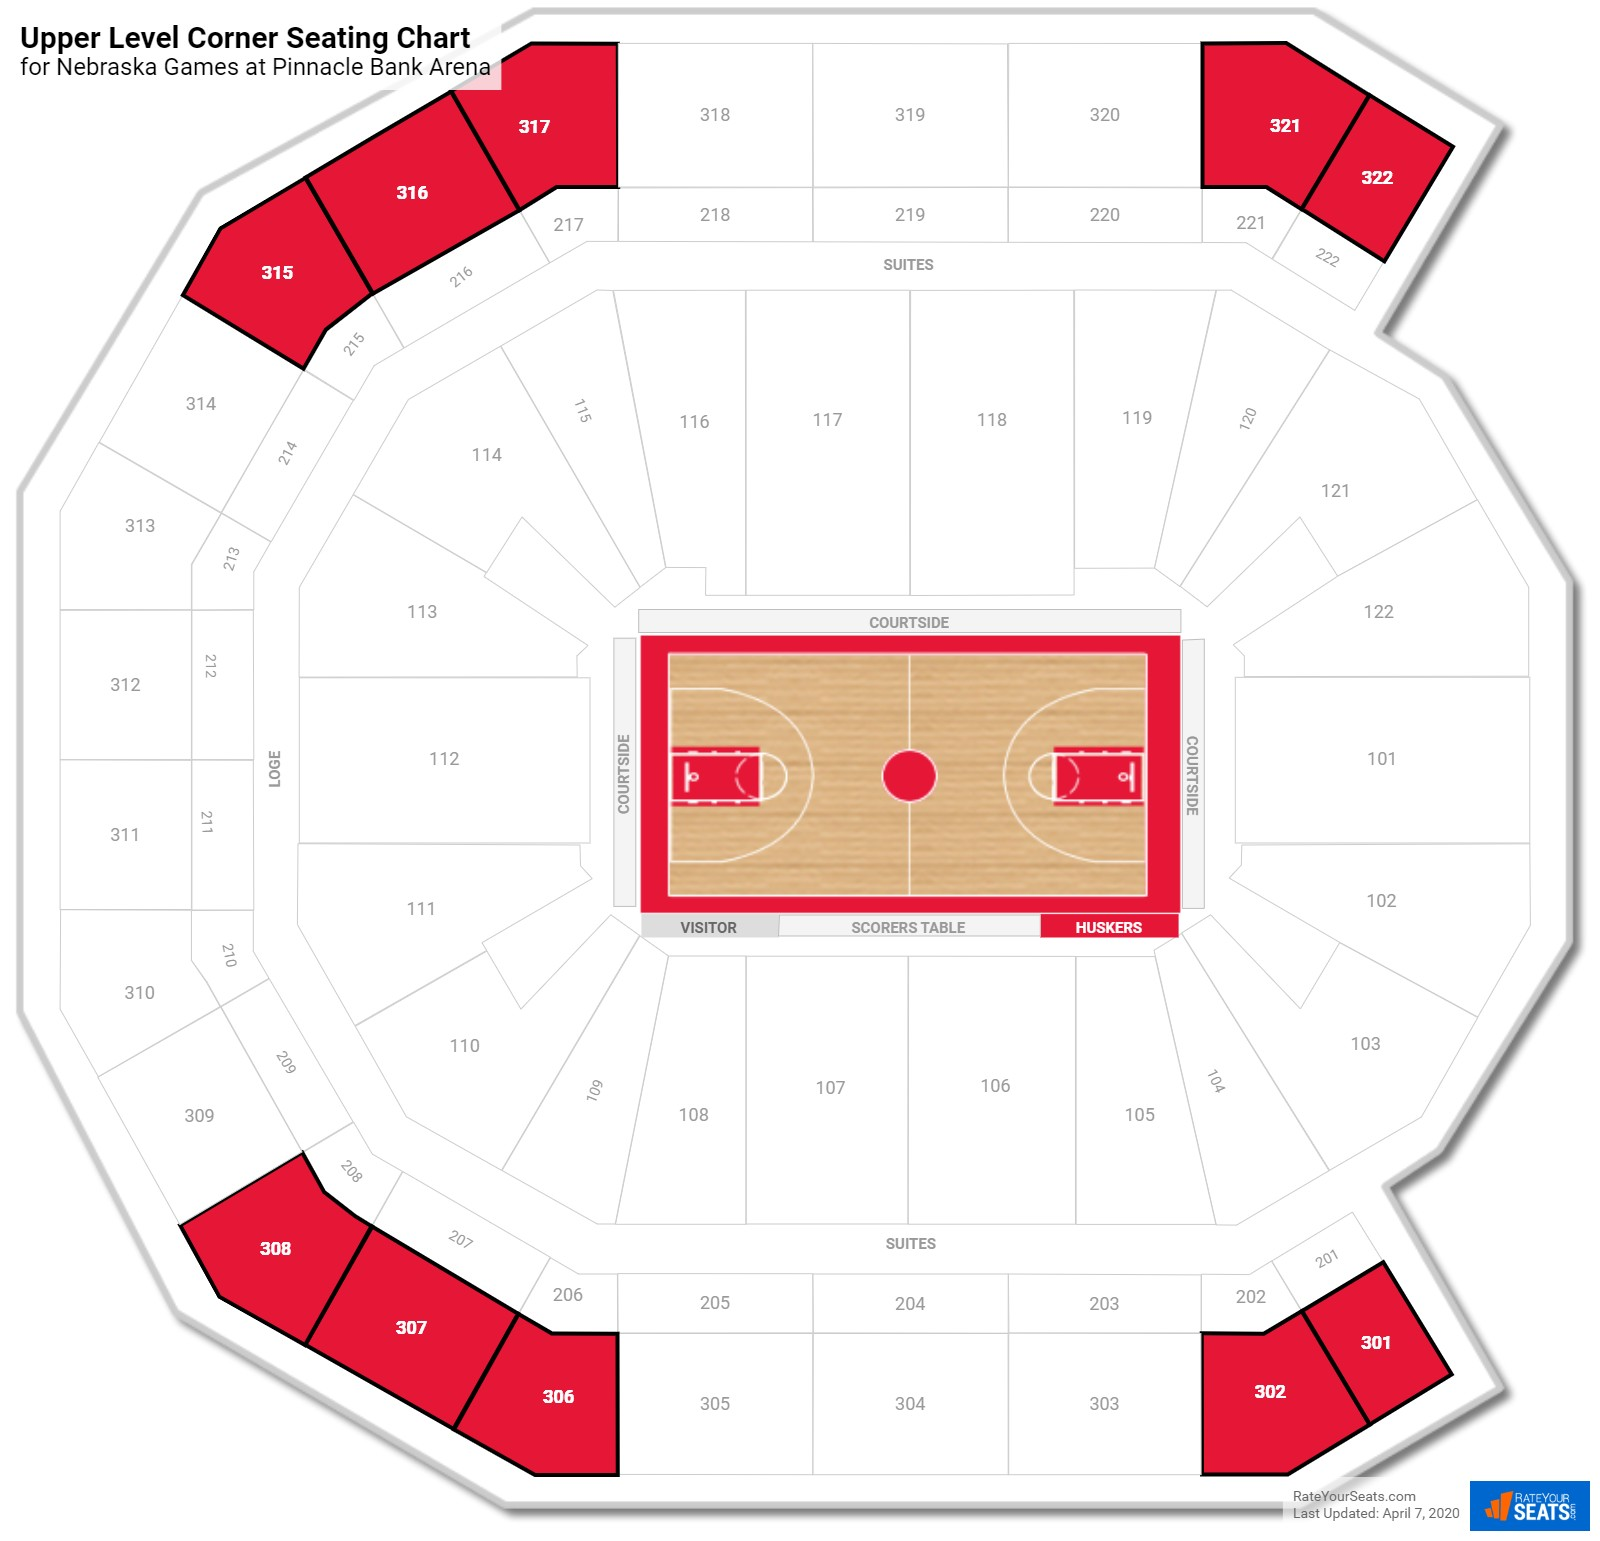 Pinnacle Bank Arena Upper Level Corner seating chart